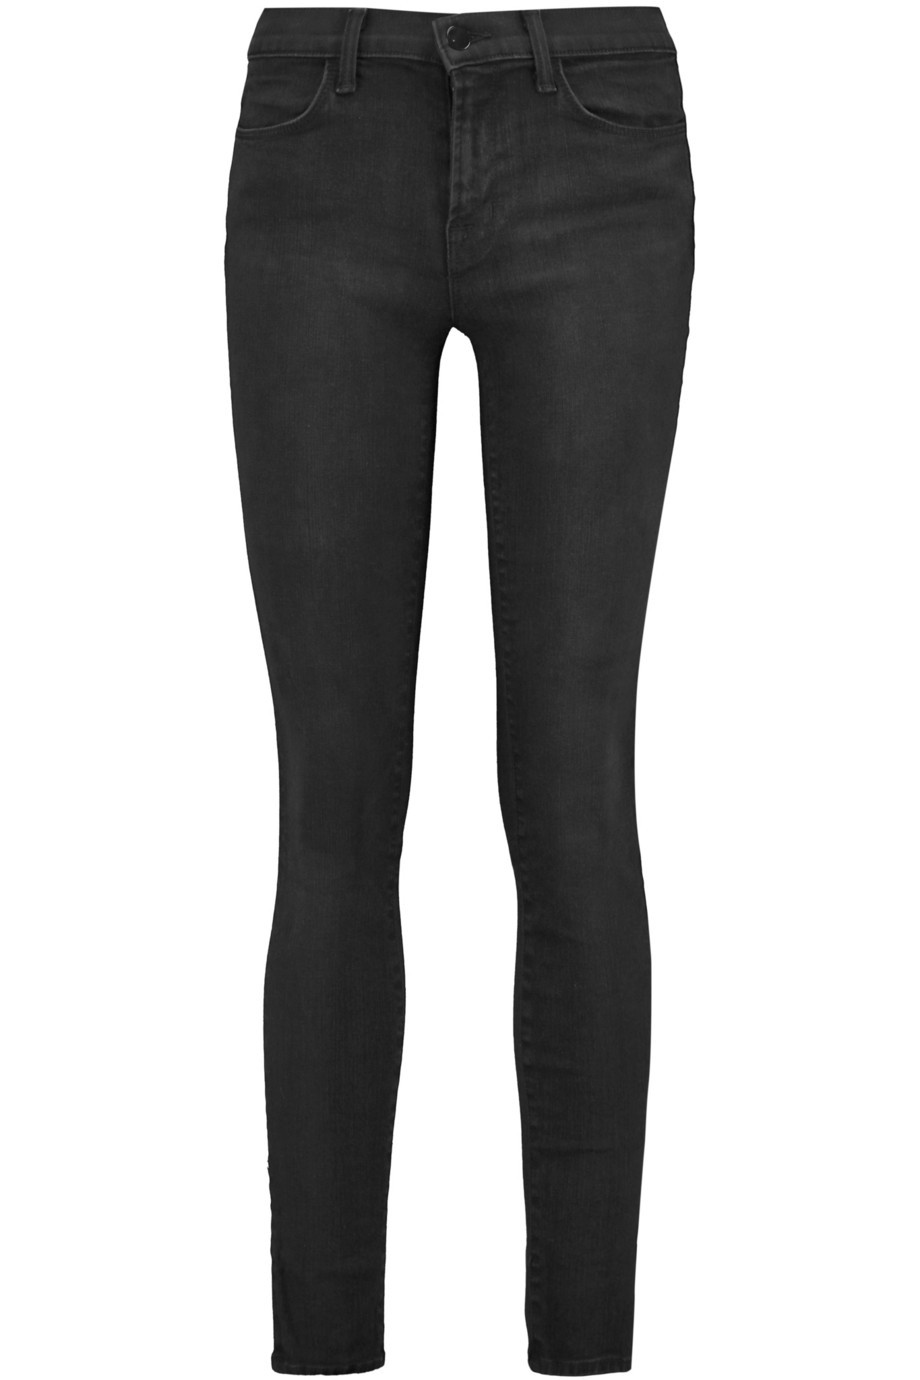 Mid Rise Skinny Jeans Charcoal - style: skinny leg; length: standard; pattern: plain; waist: mid/regular rise; predominant colour: black; occasions: casual; fibres: cotton - stretch; jeans detail: dark wash; texture group: denim; pattern type: fabric; season: s/s 2016; wardrobe: basic